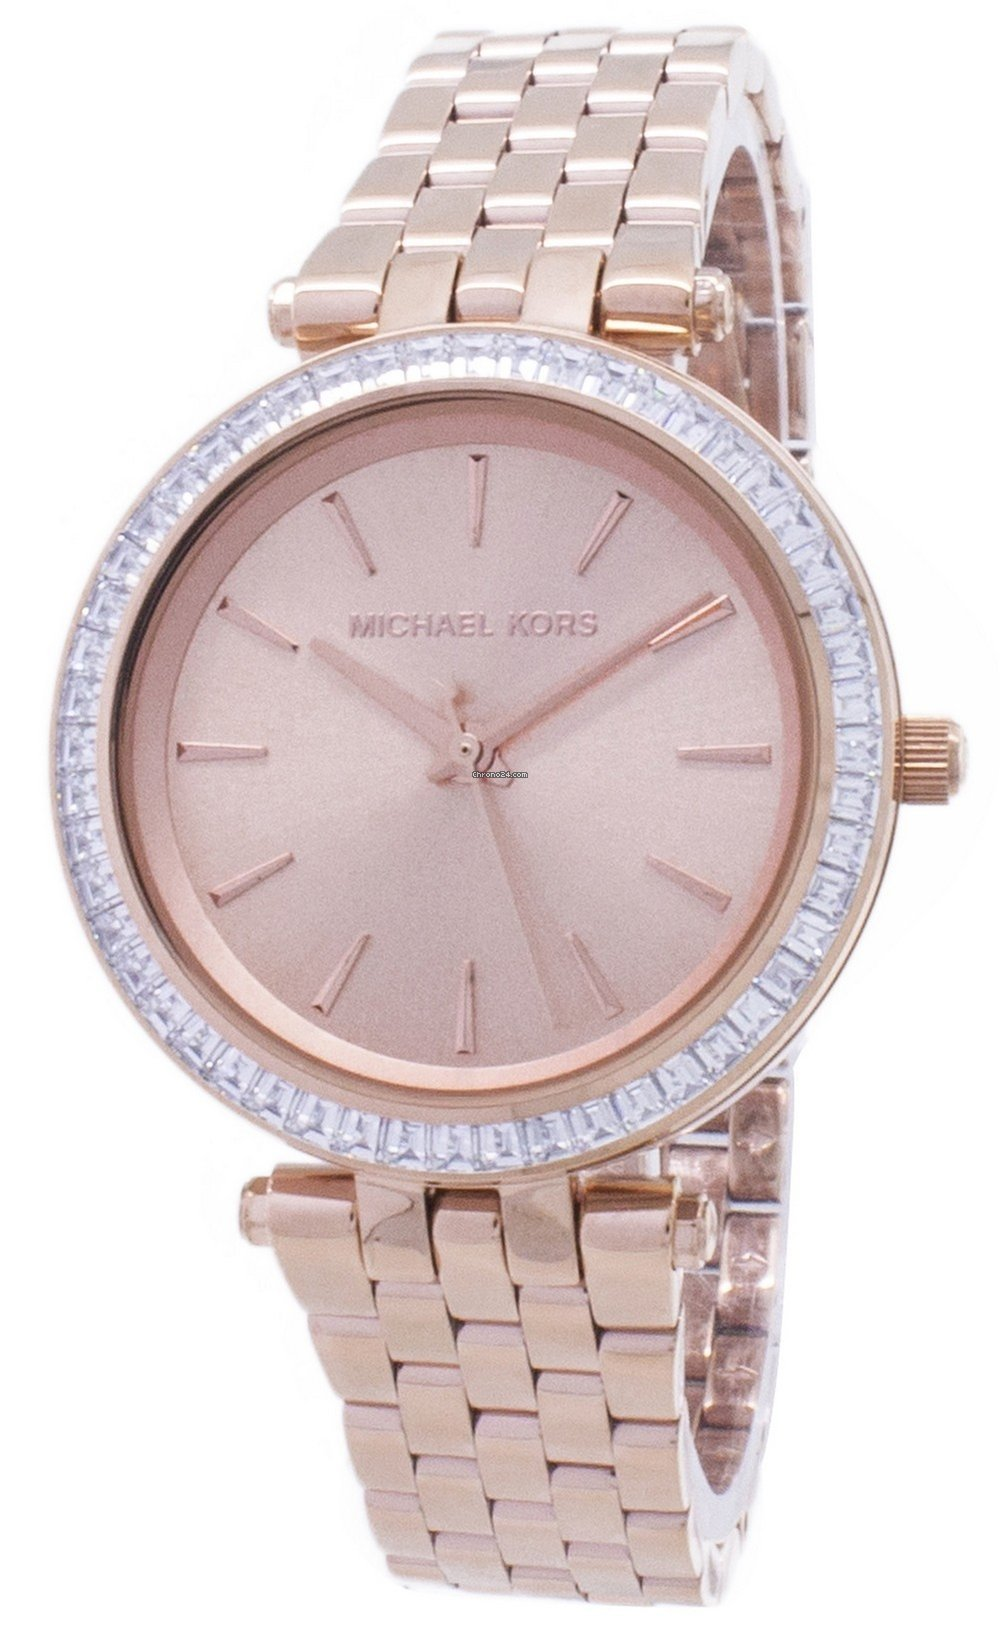 ca238a4693fa Michael Kors Mini Darci Crystals Rose Gold Tone MK3366 Women s... for  150  for sale from a Seller on Chrono24